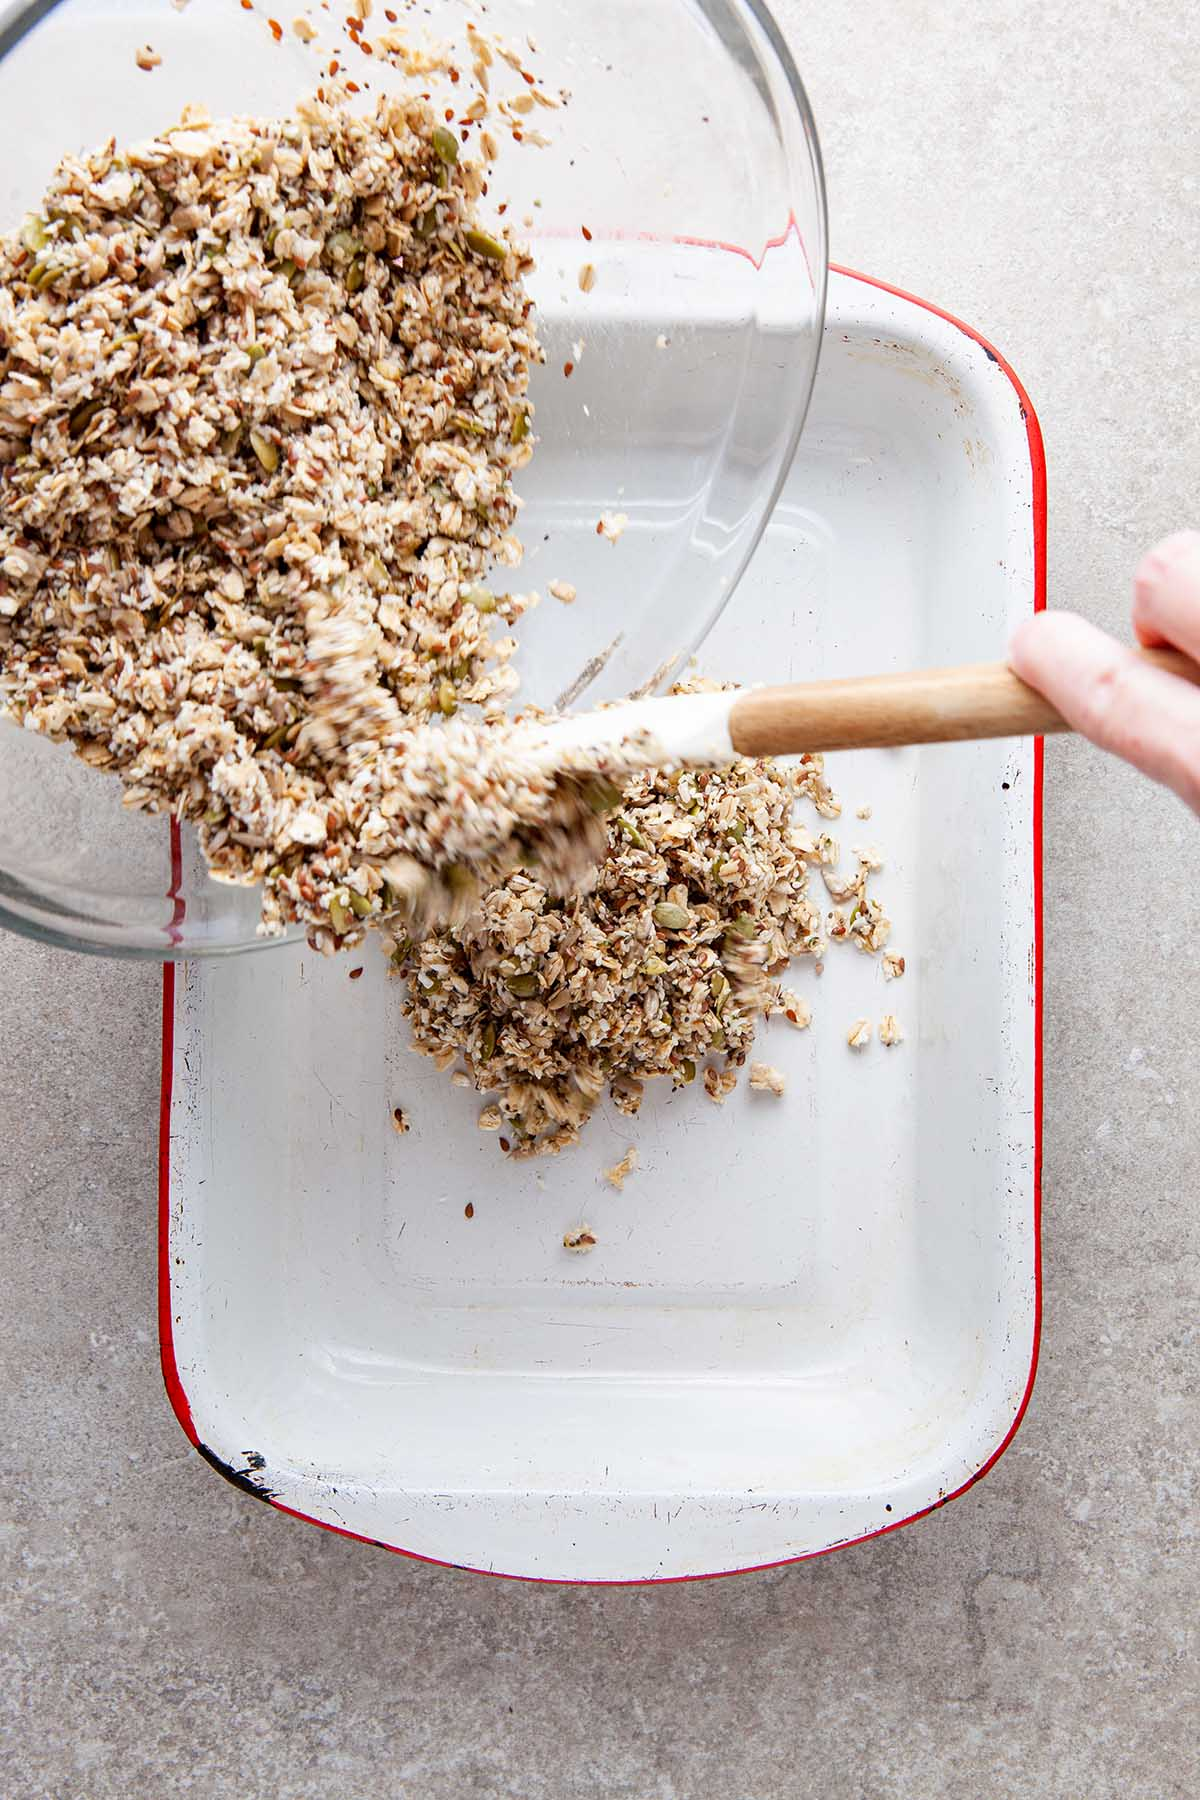 A hand scraping a honey, oat, and seeds mixture into a baking dish from a glass bowl.